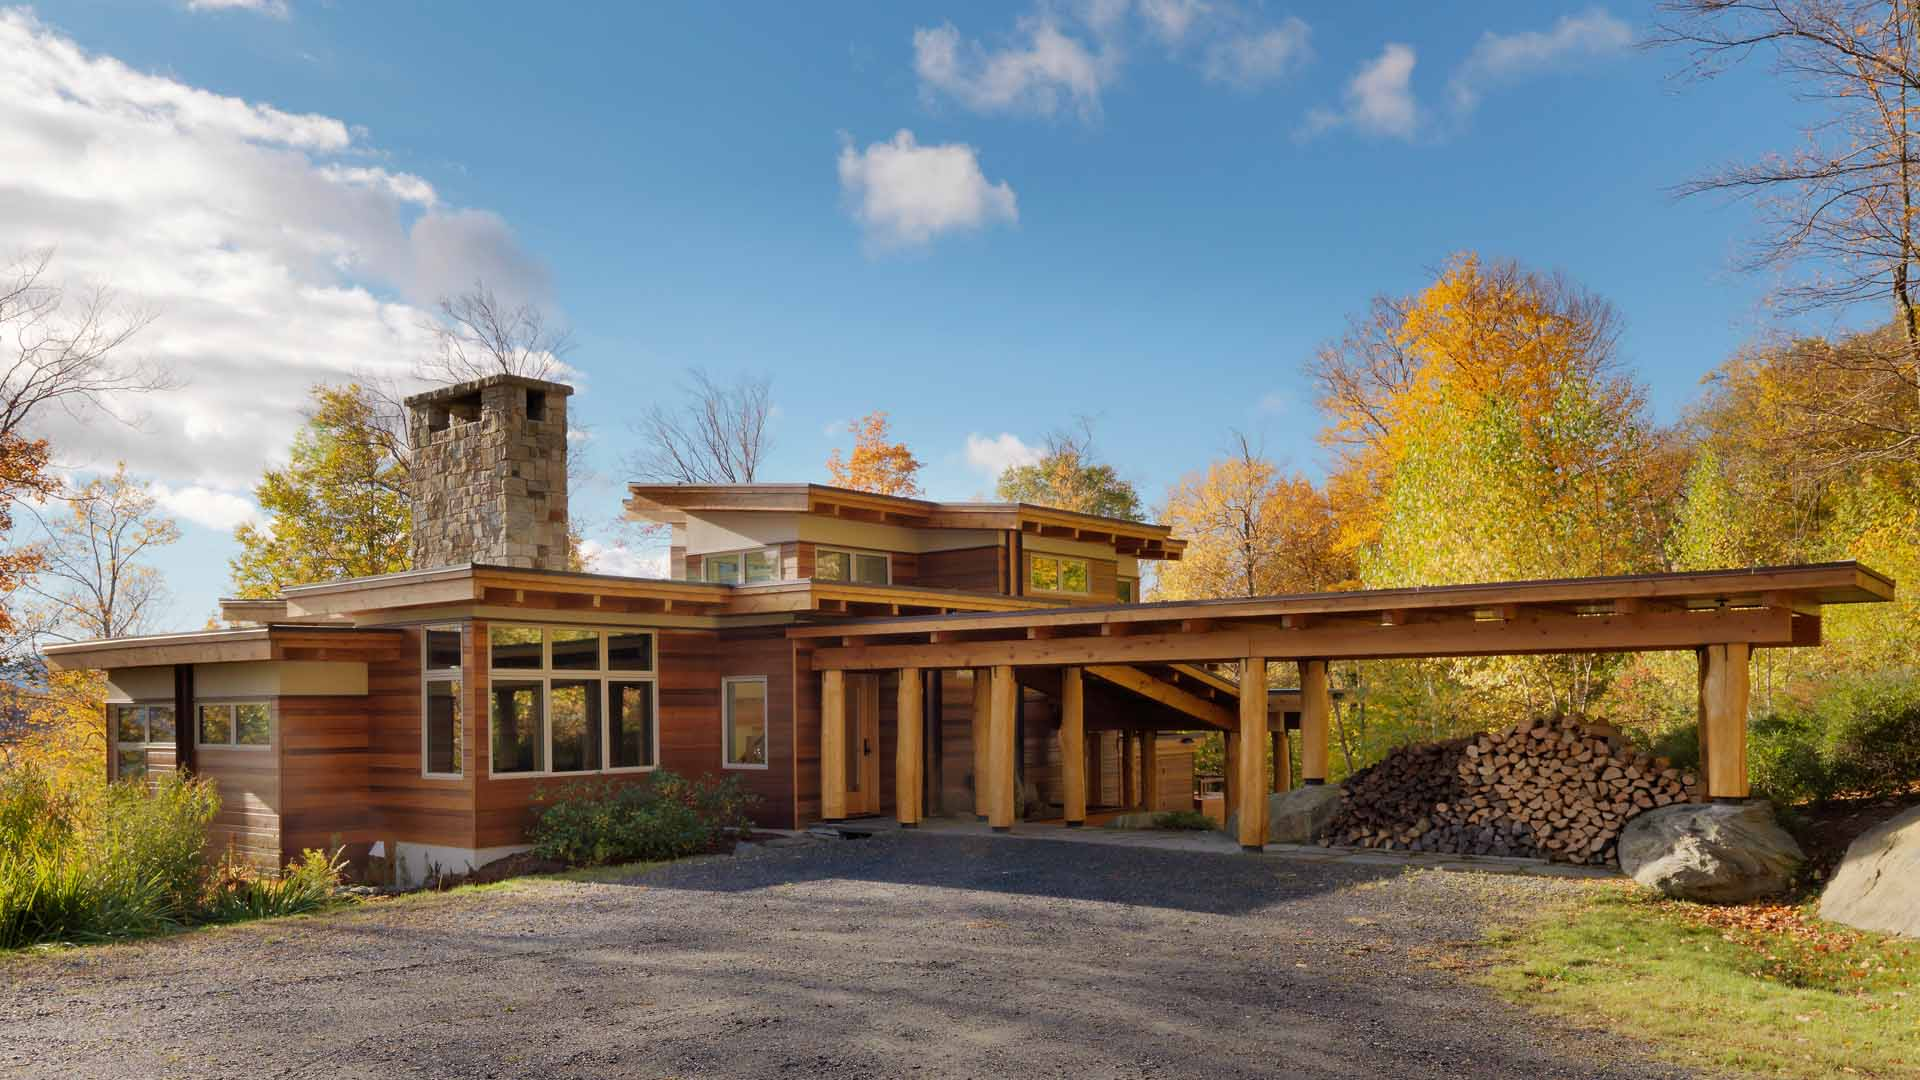 Architecture and design of Mountainside Residence - Warren, Vermont